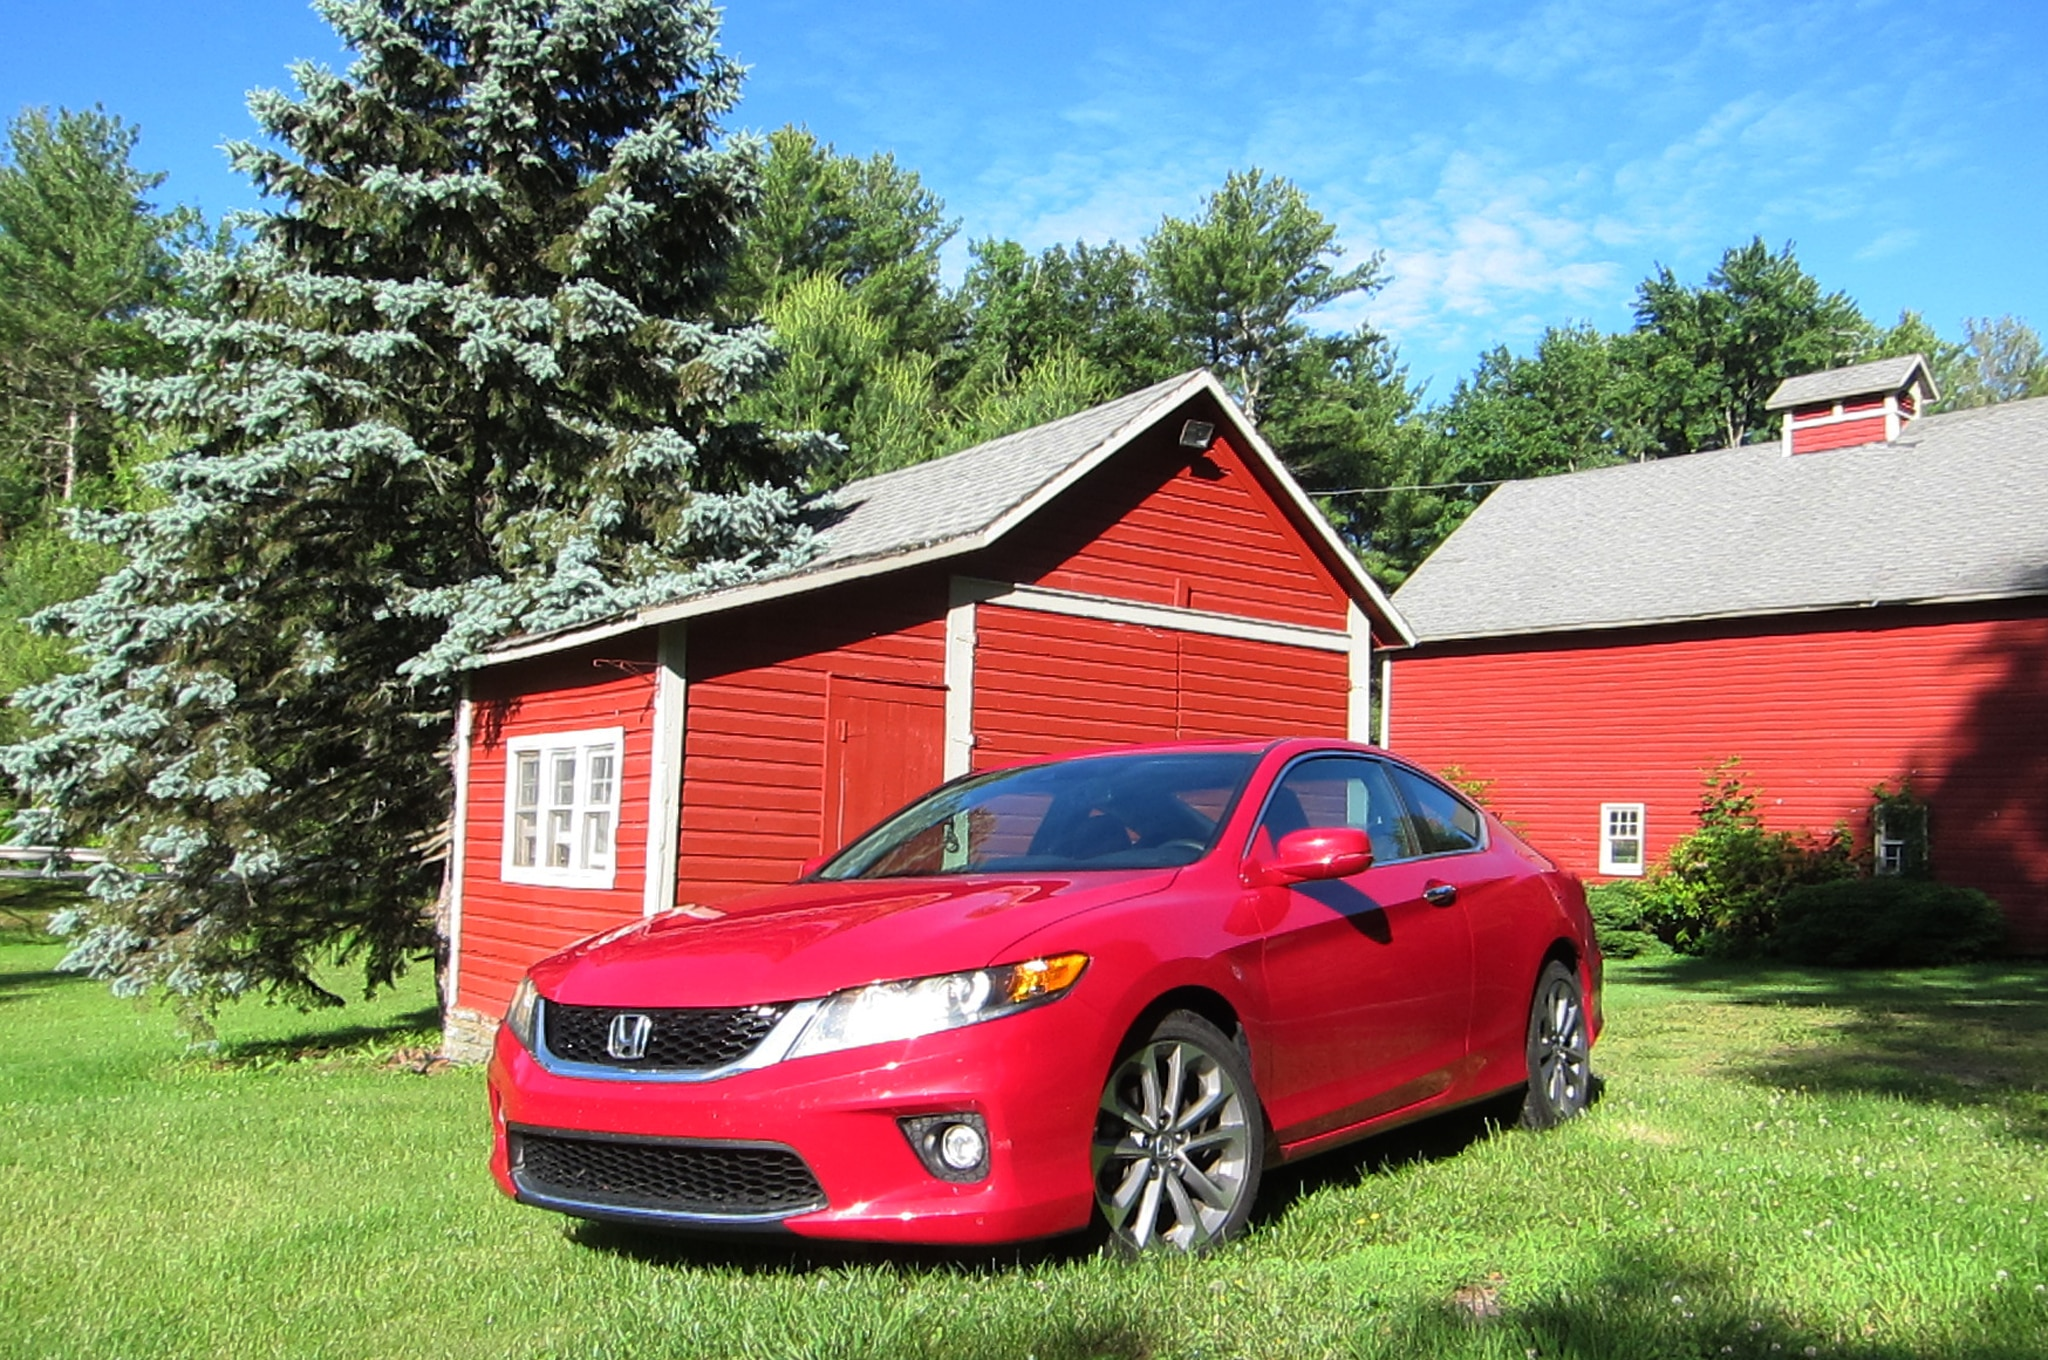 2014 Honda Accord Coupe V6 Front Three Quarters With Barn1